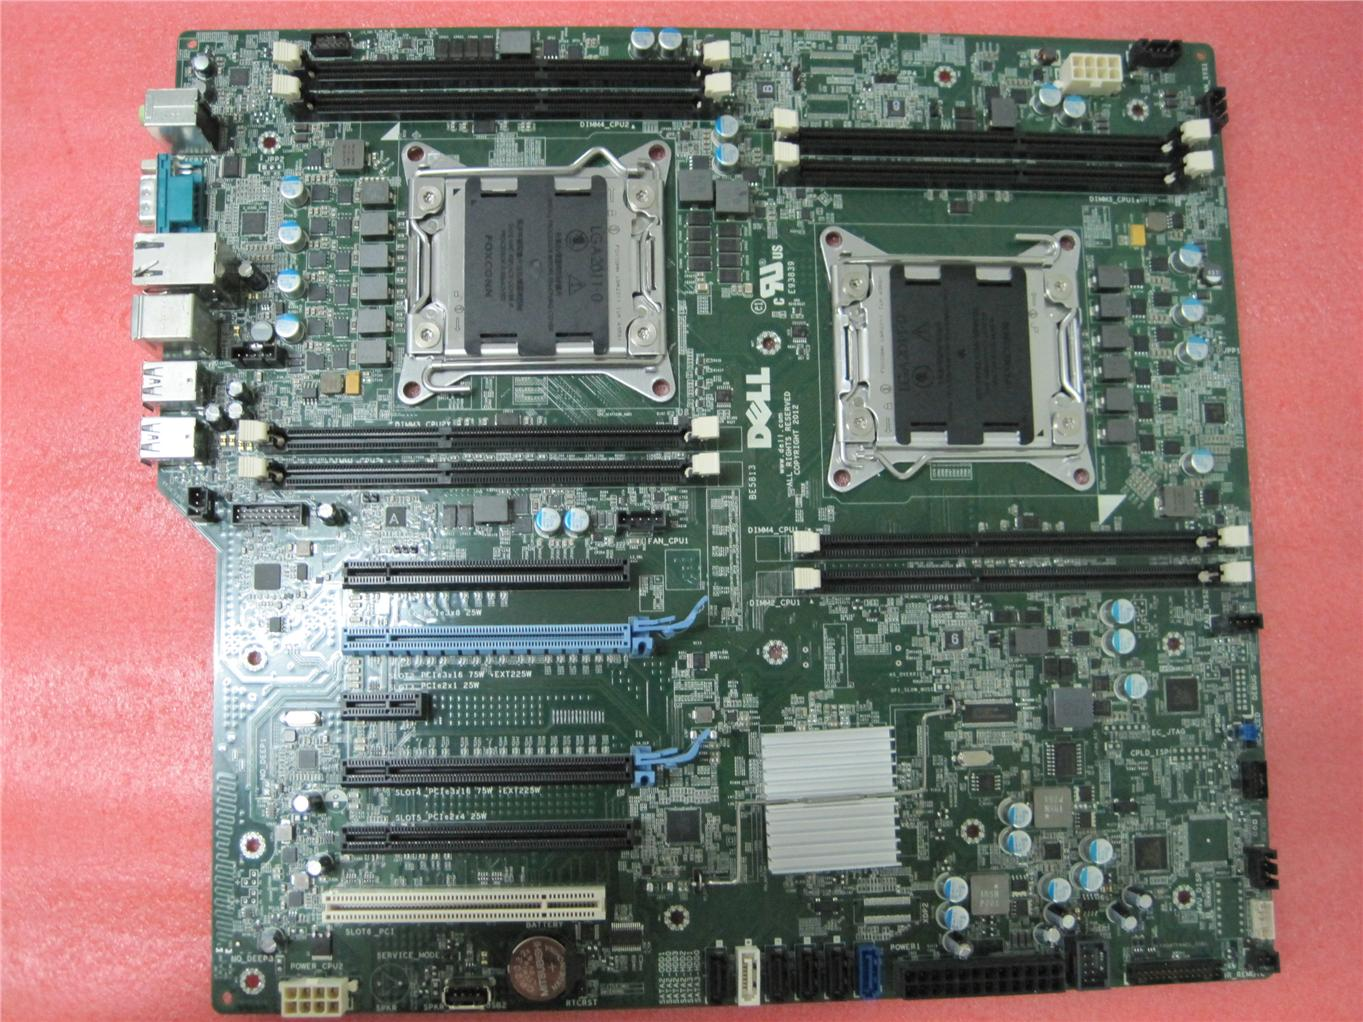 Improving cooling on a Precision T5610 - Ars Technica OpenForum